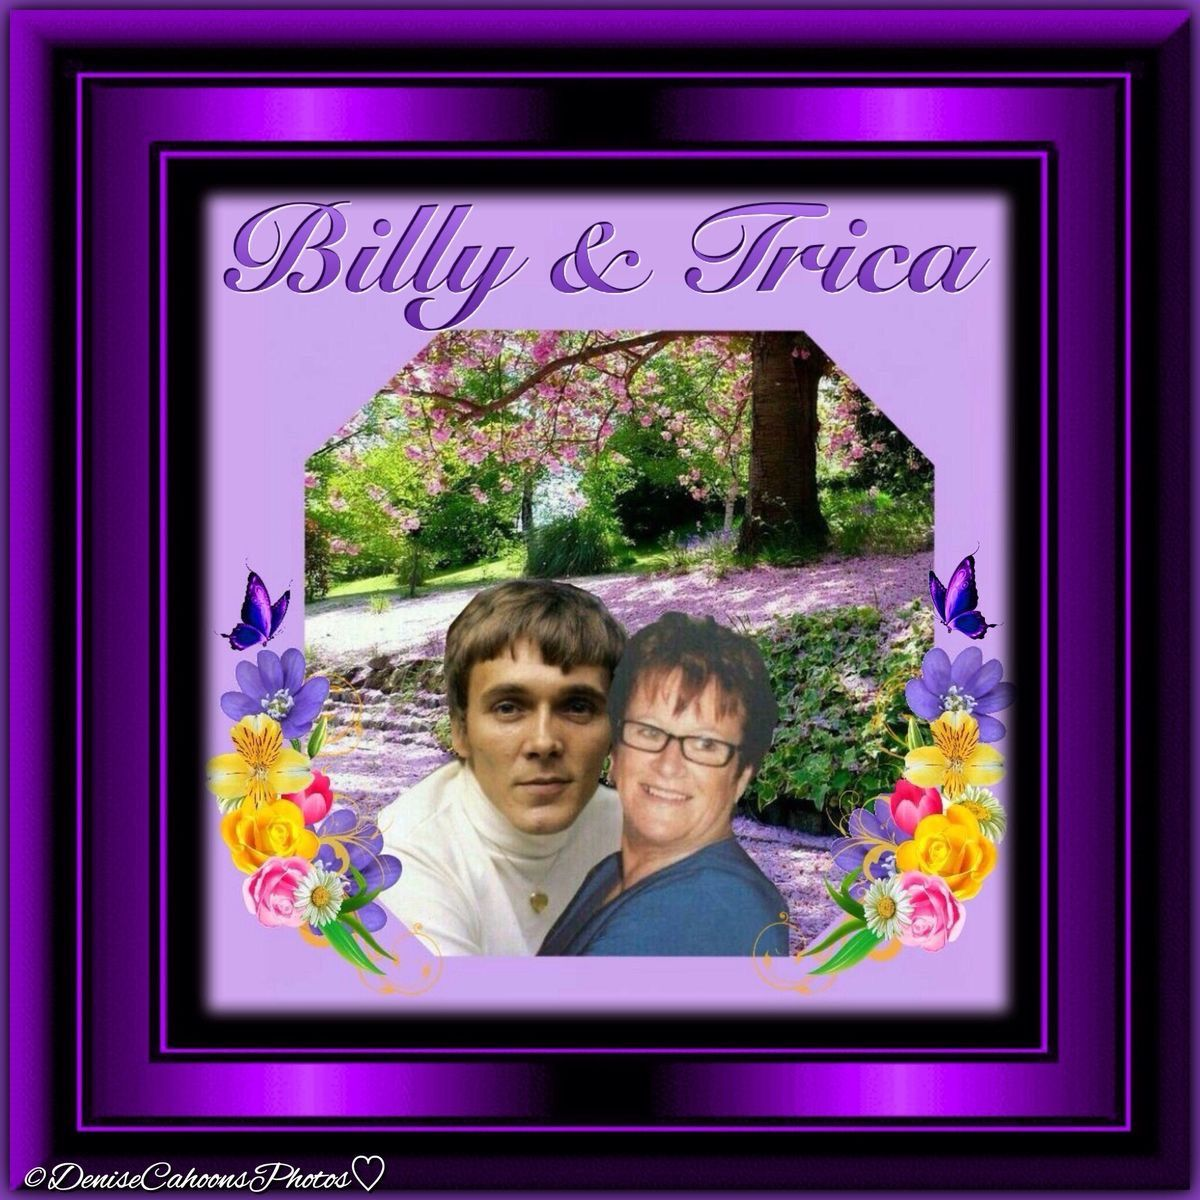 For My Friend Tricia